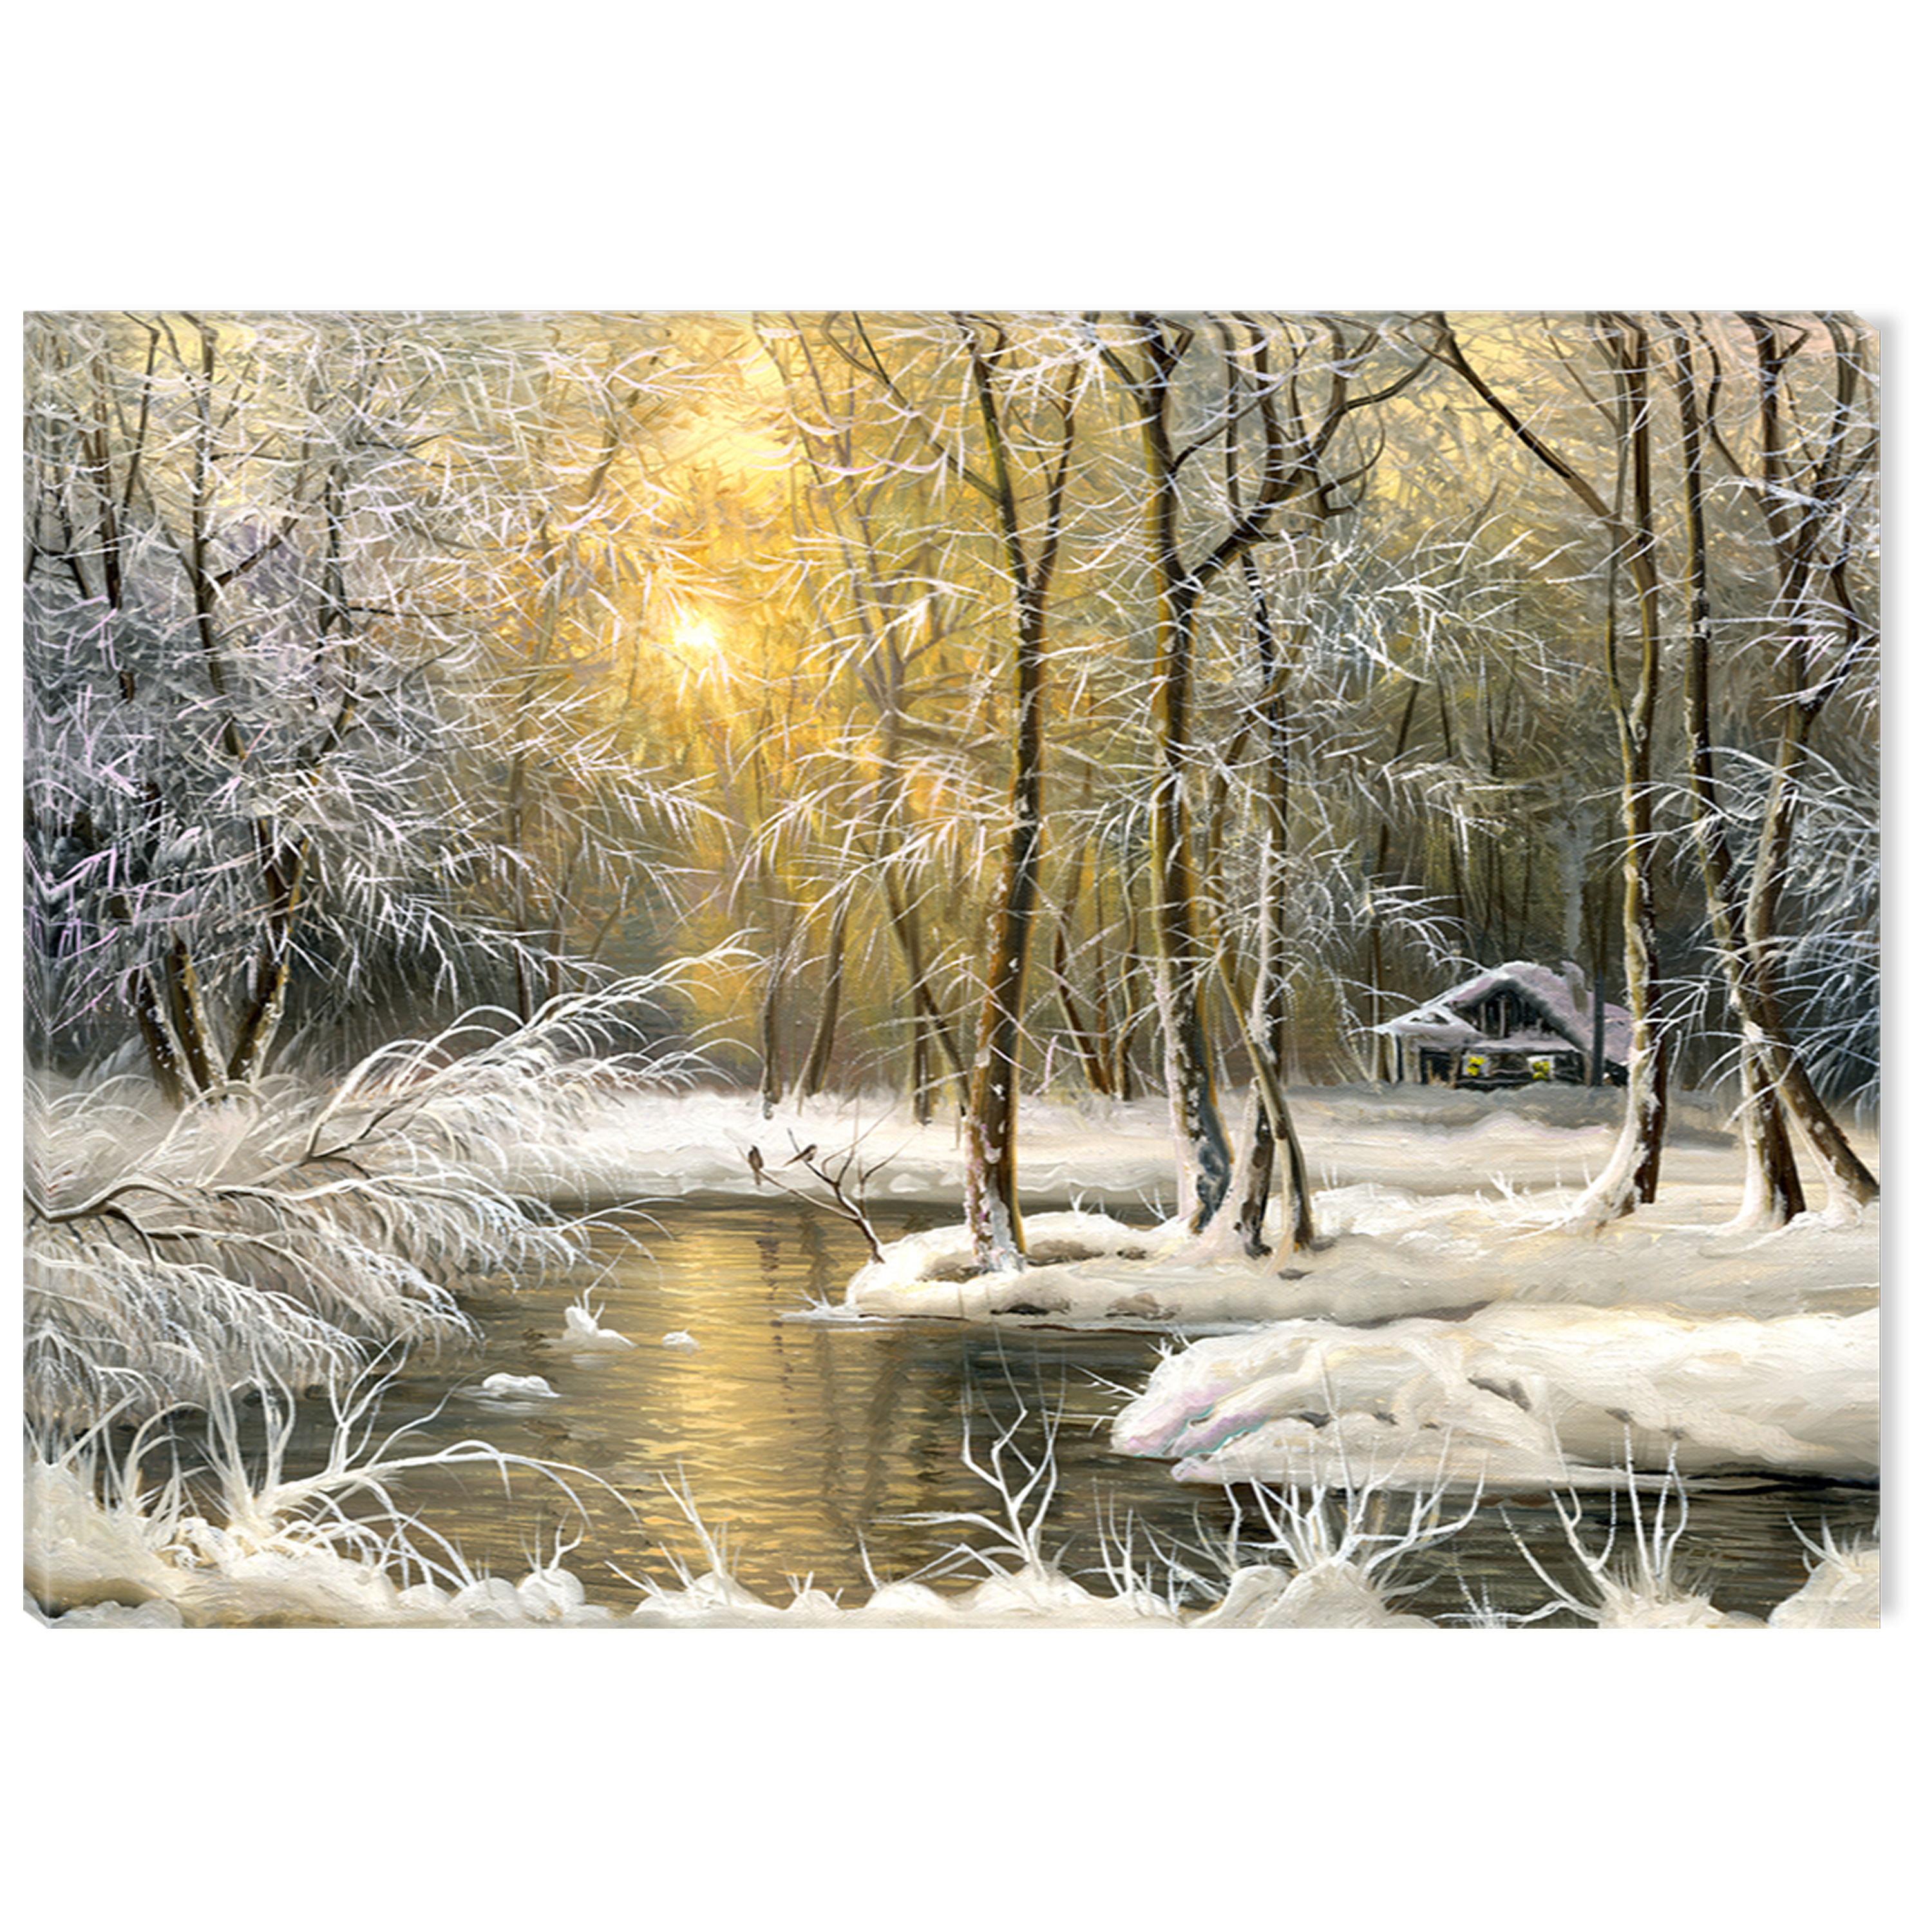 Startonight Canvas Wall Art Winter on the Lake USA Design for Home Decor, Illuminated Landsapes Painting Modern Canvas Artwork Framed Ready to Hang Medium 23.62 X 47.2 inch